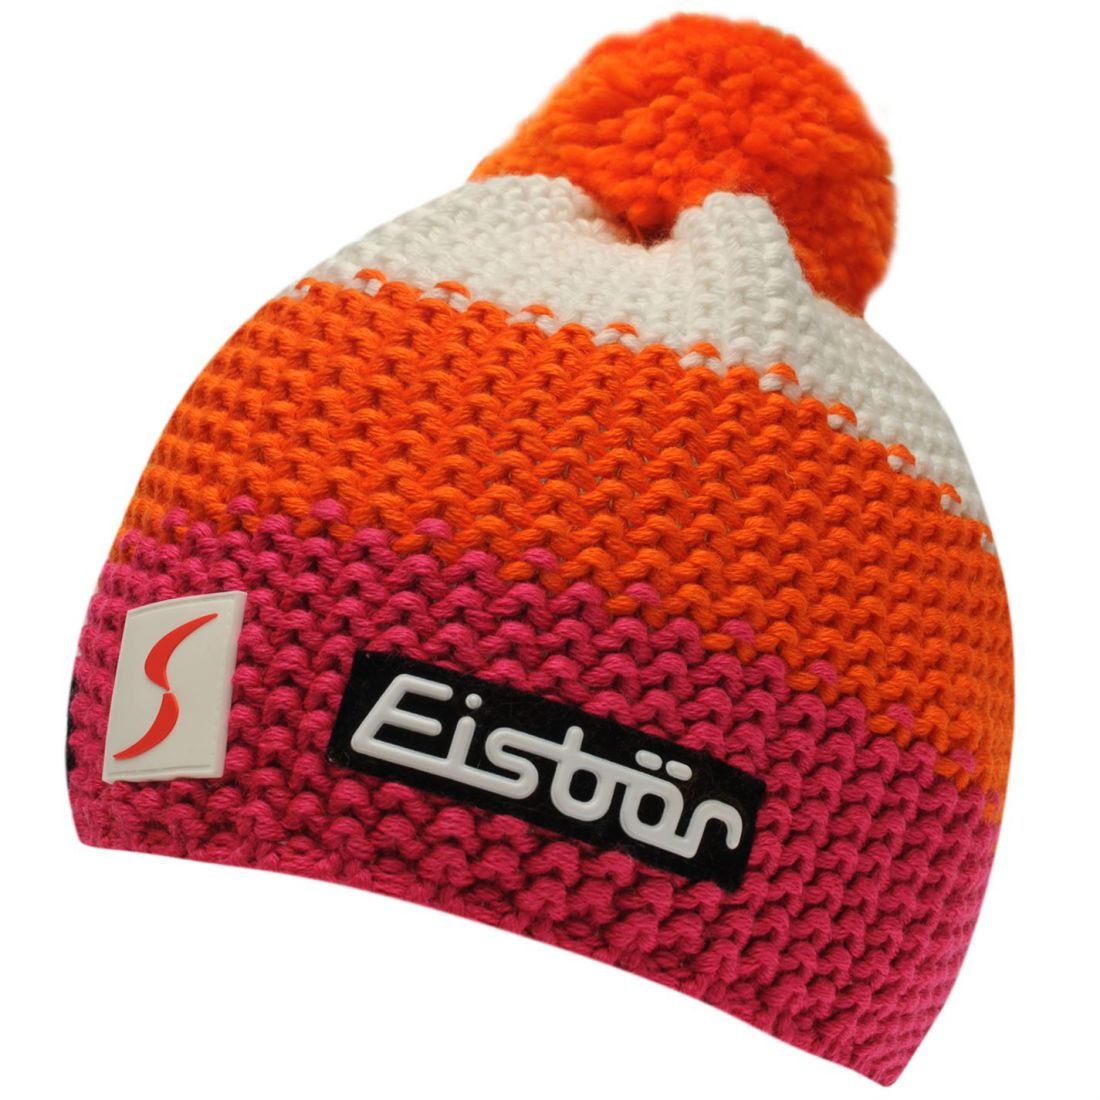 Details about Eisbar Childrens Fergus Neon Ski Hat Sport Activities Winter  Snow Headwear 87378bd9818